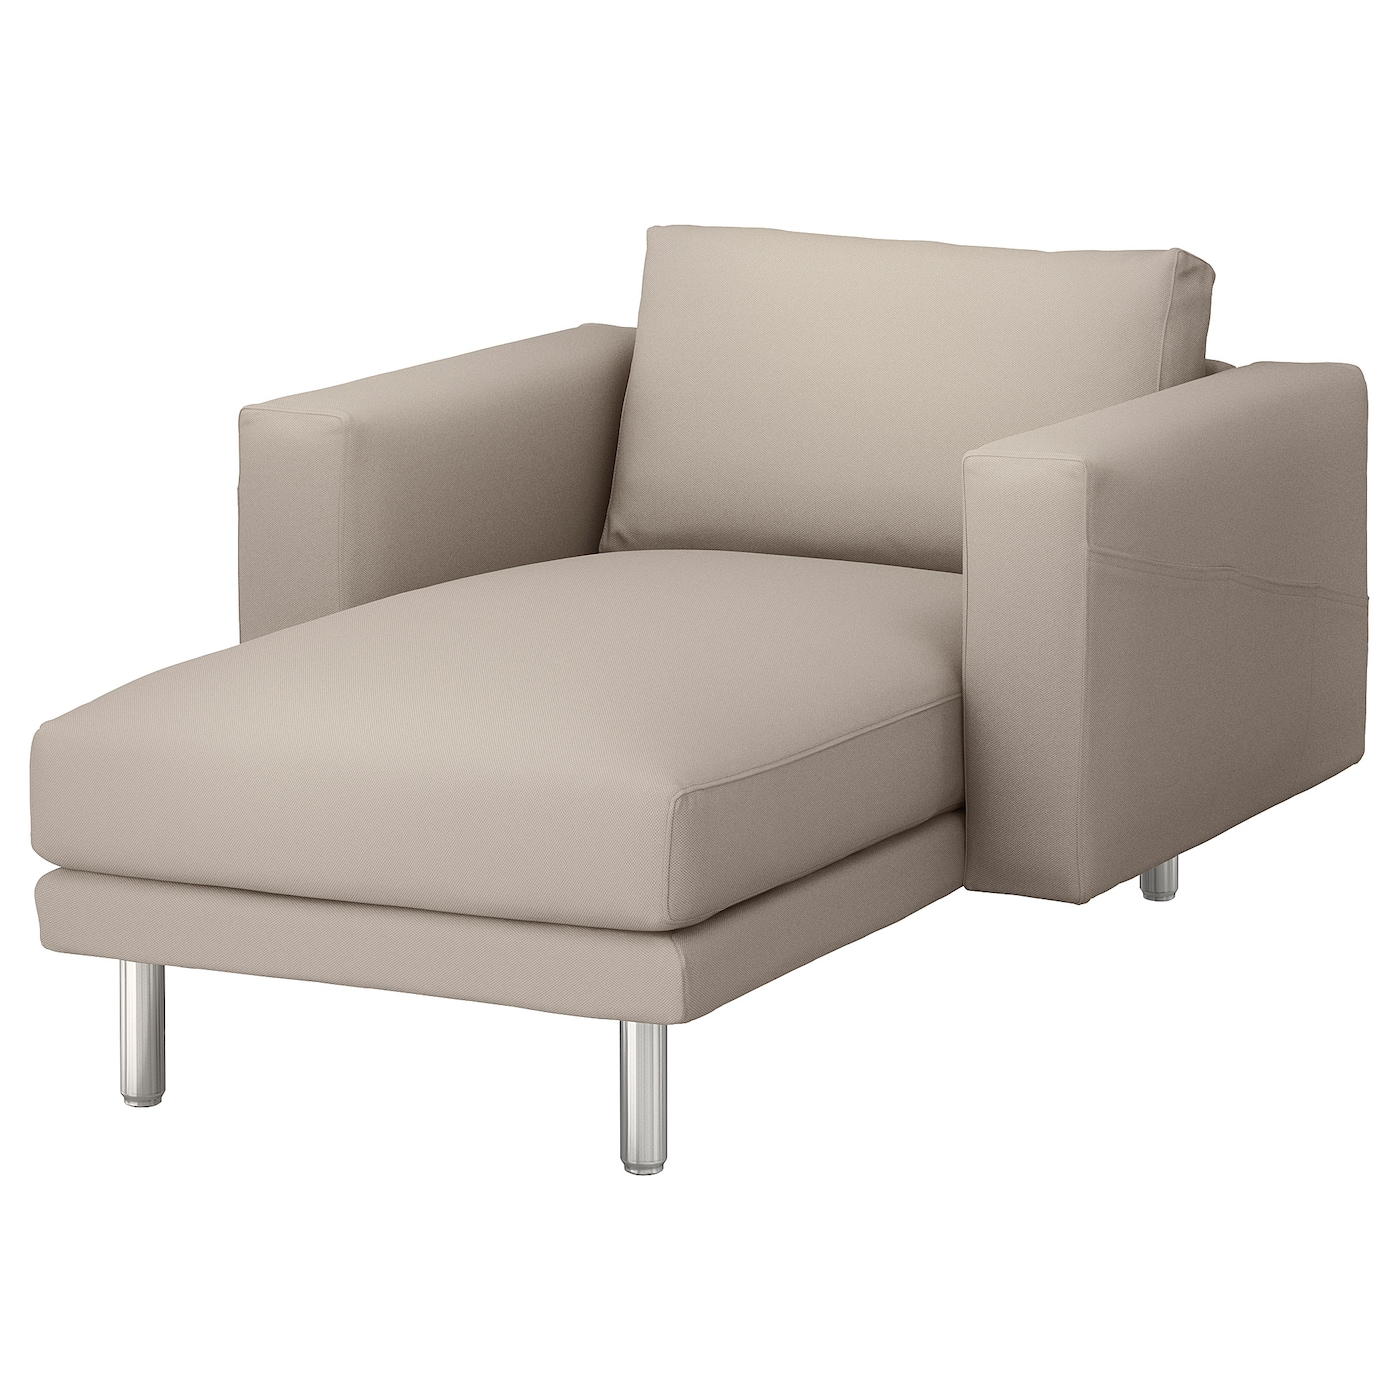 Ikea sofa with chaise kivik 3 seat sofa with chaise longue for Chaise longue en rotin ancienne